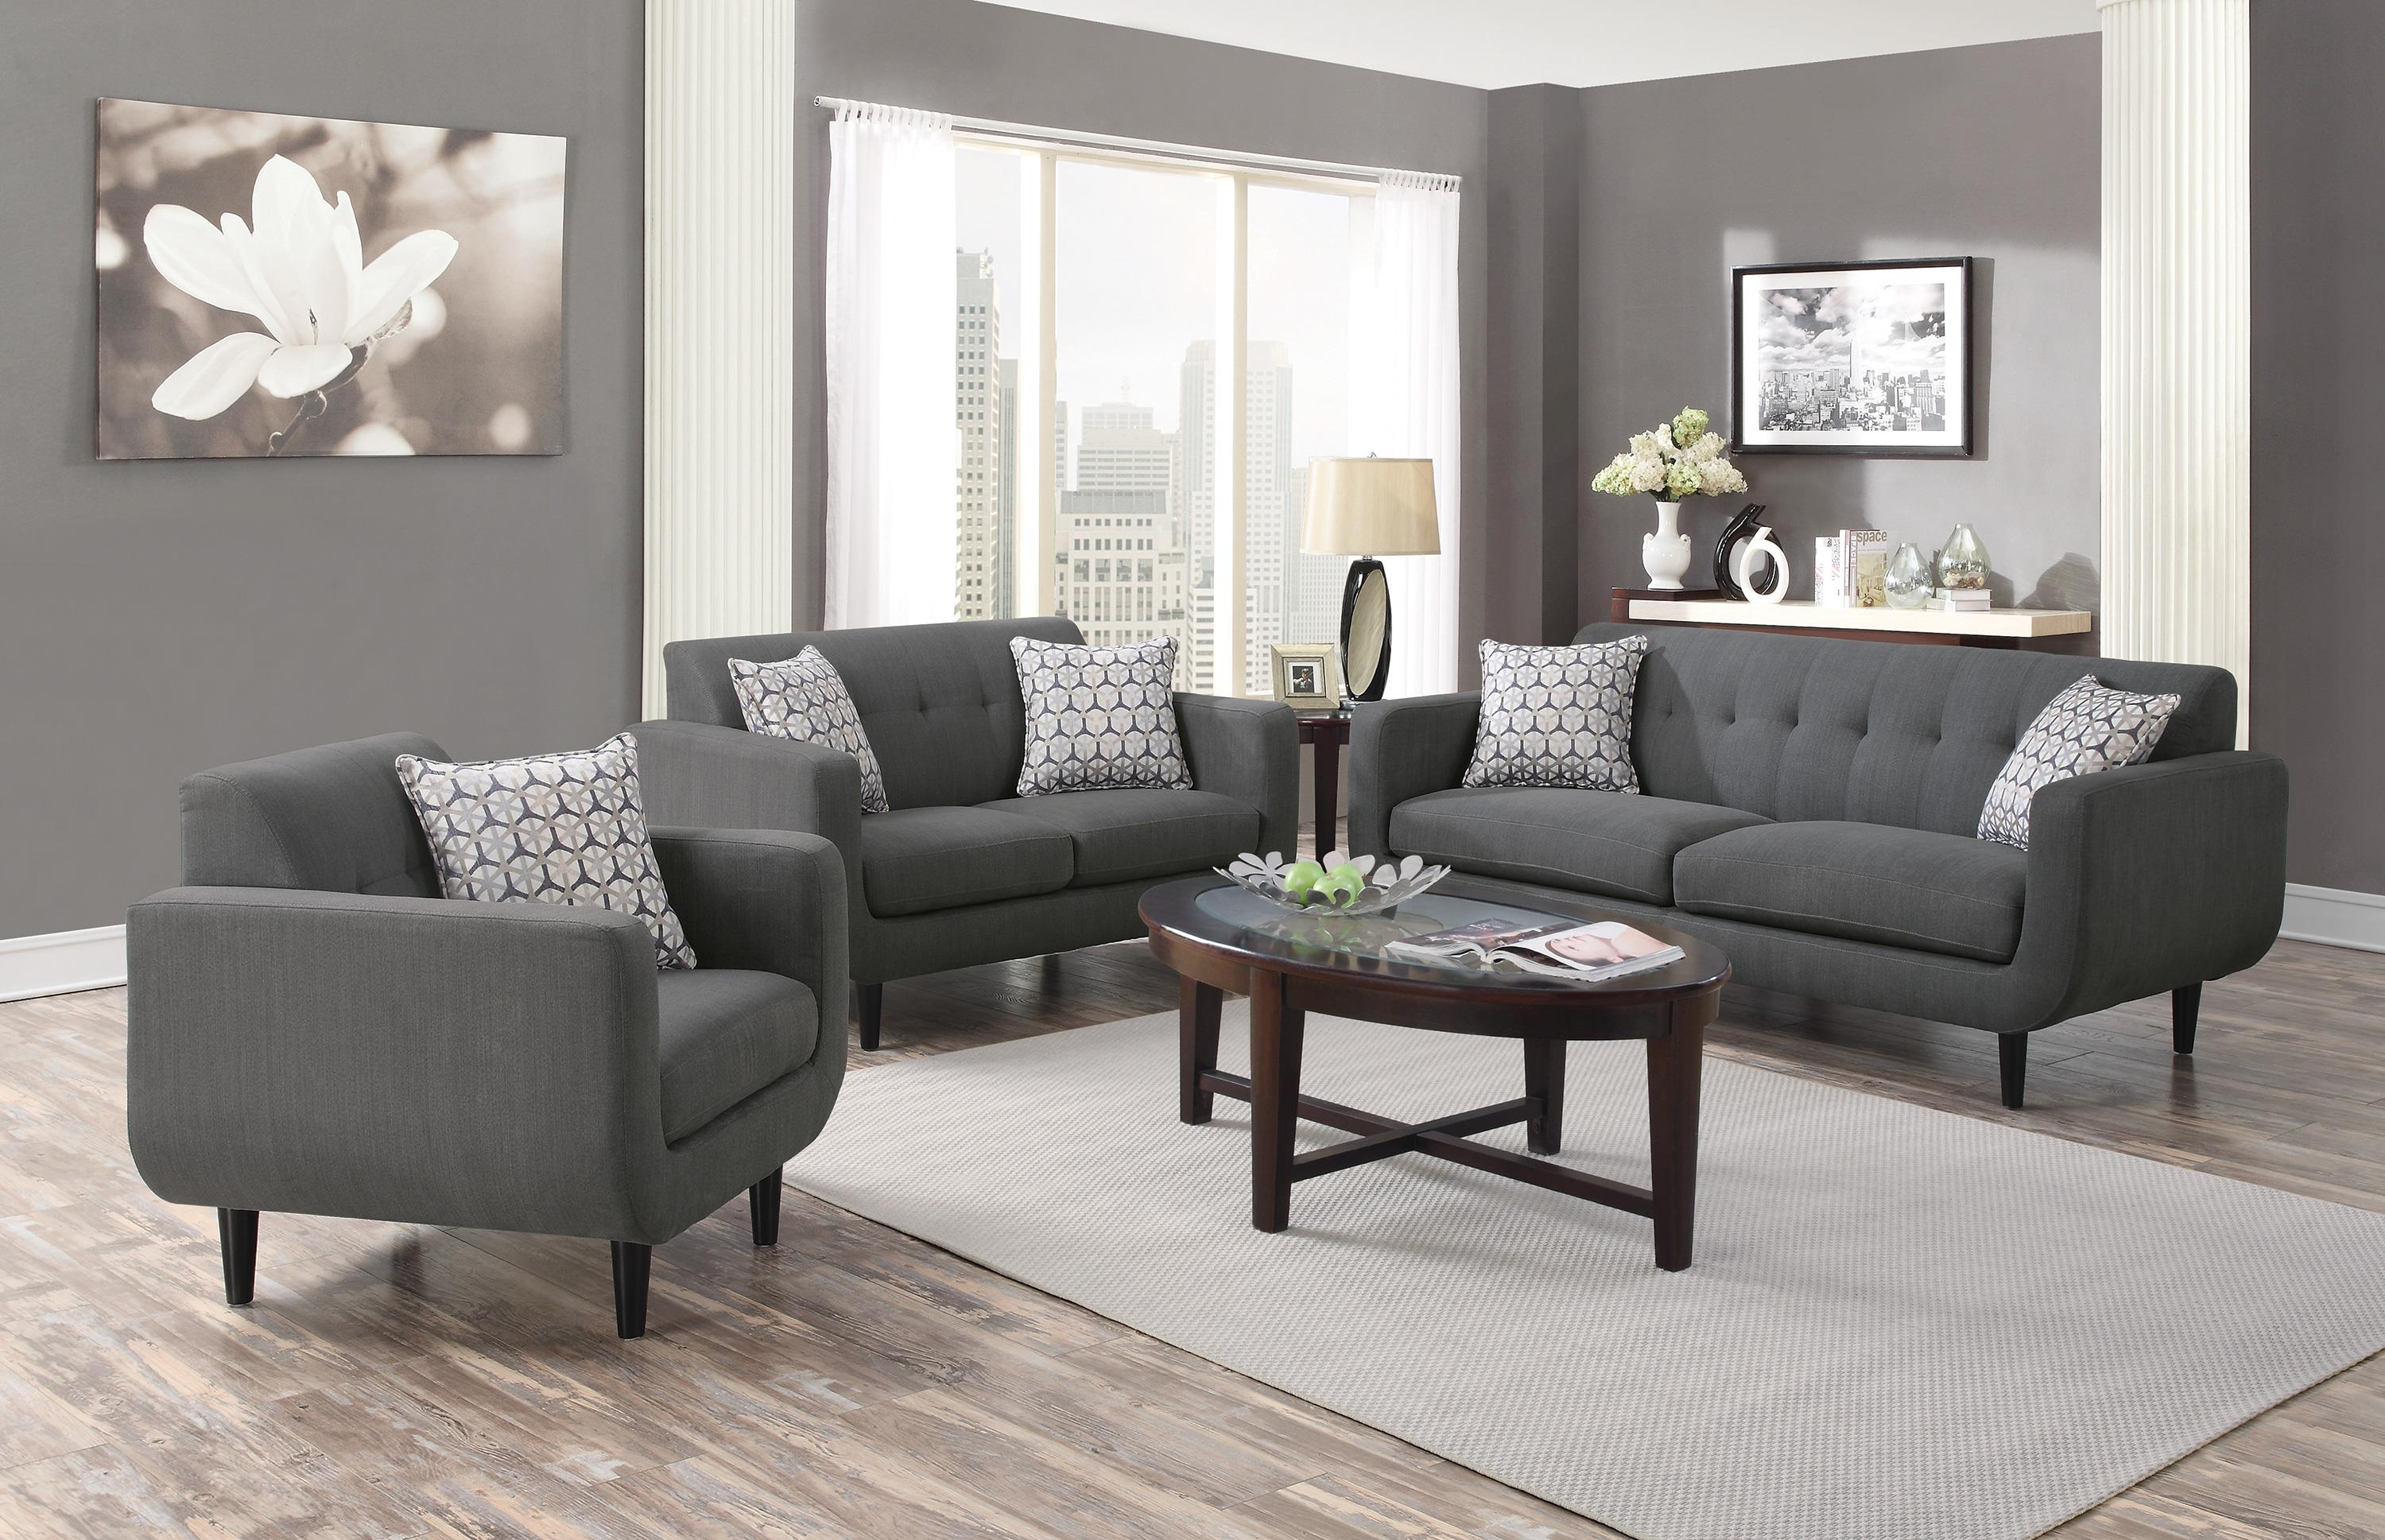 Coaster stansall 2pc grey sofa loveseat set dallas tx Living room furniture dallas